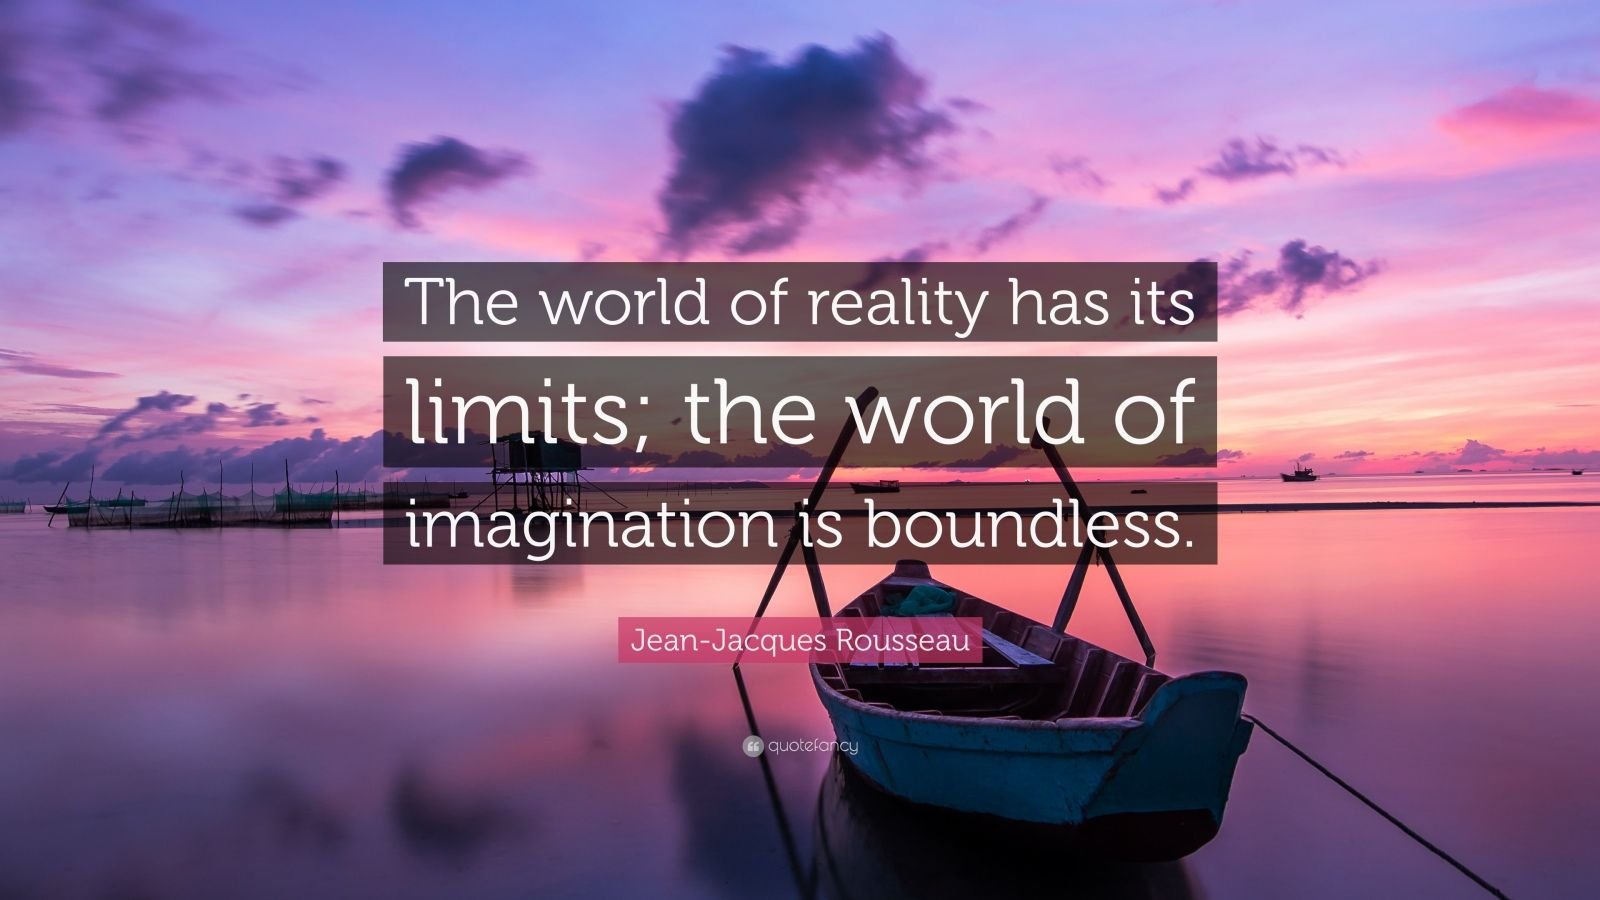 Vincent Van Gogh Quotes Wallpaper Jean Jacques Rousseau Quote The World Of Reality Has Its